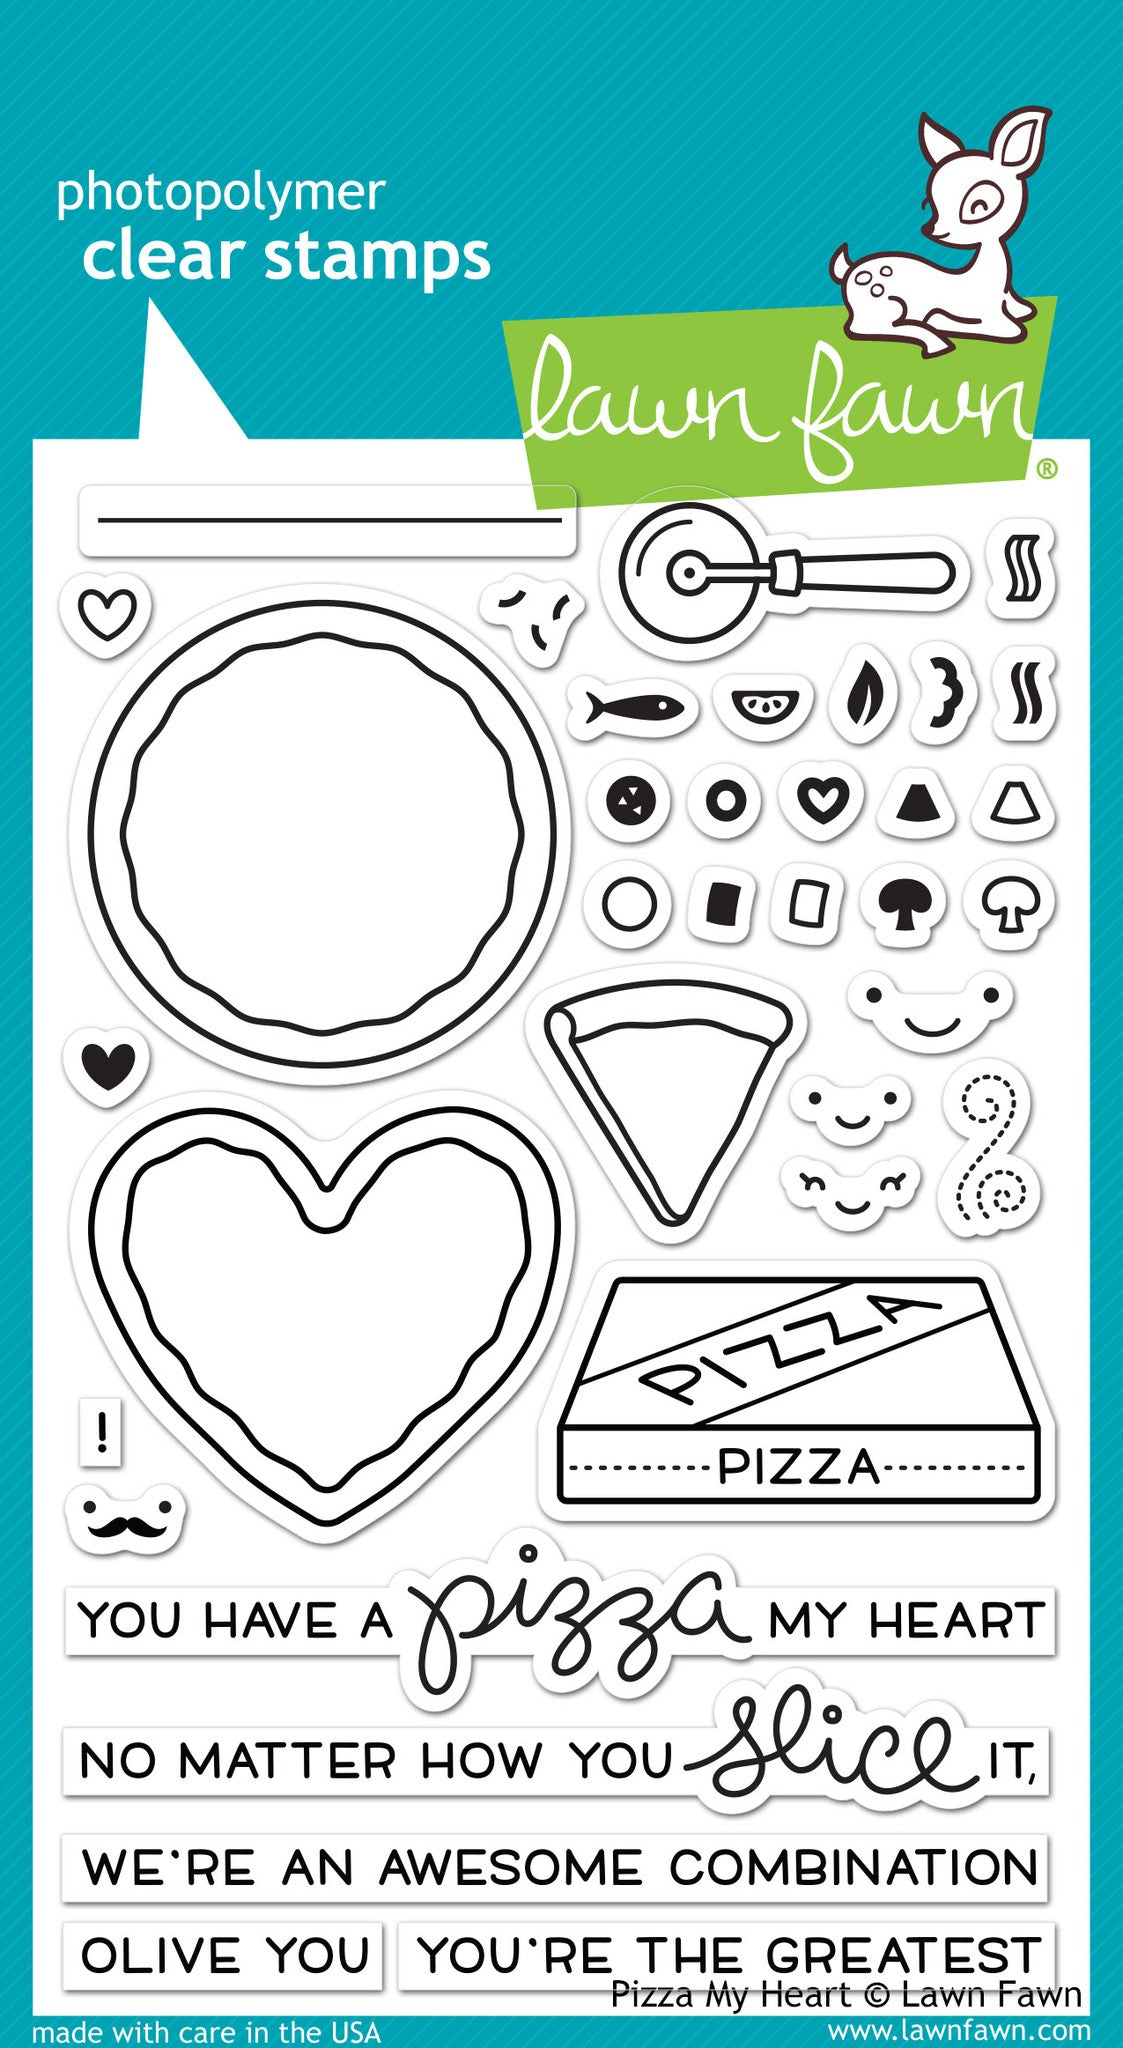 Pizza My Heart Lawn Fawn